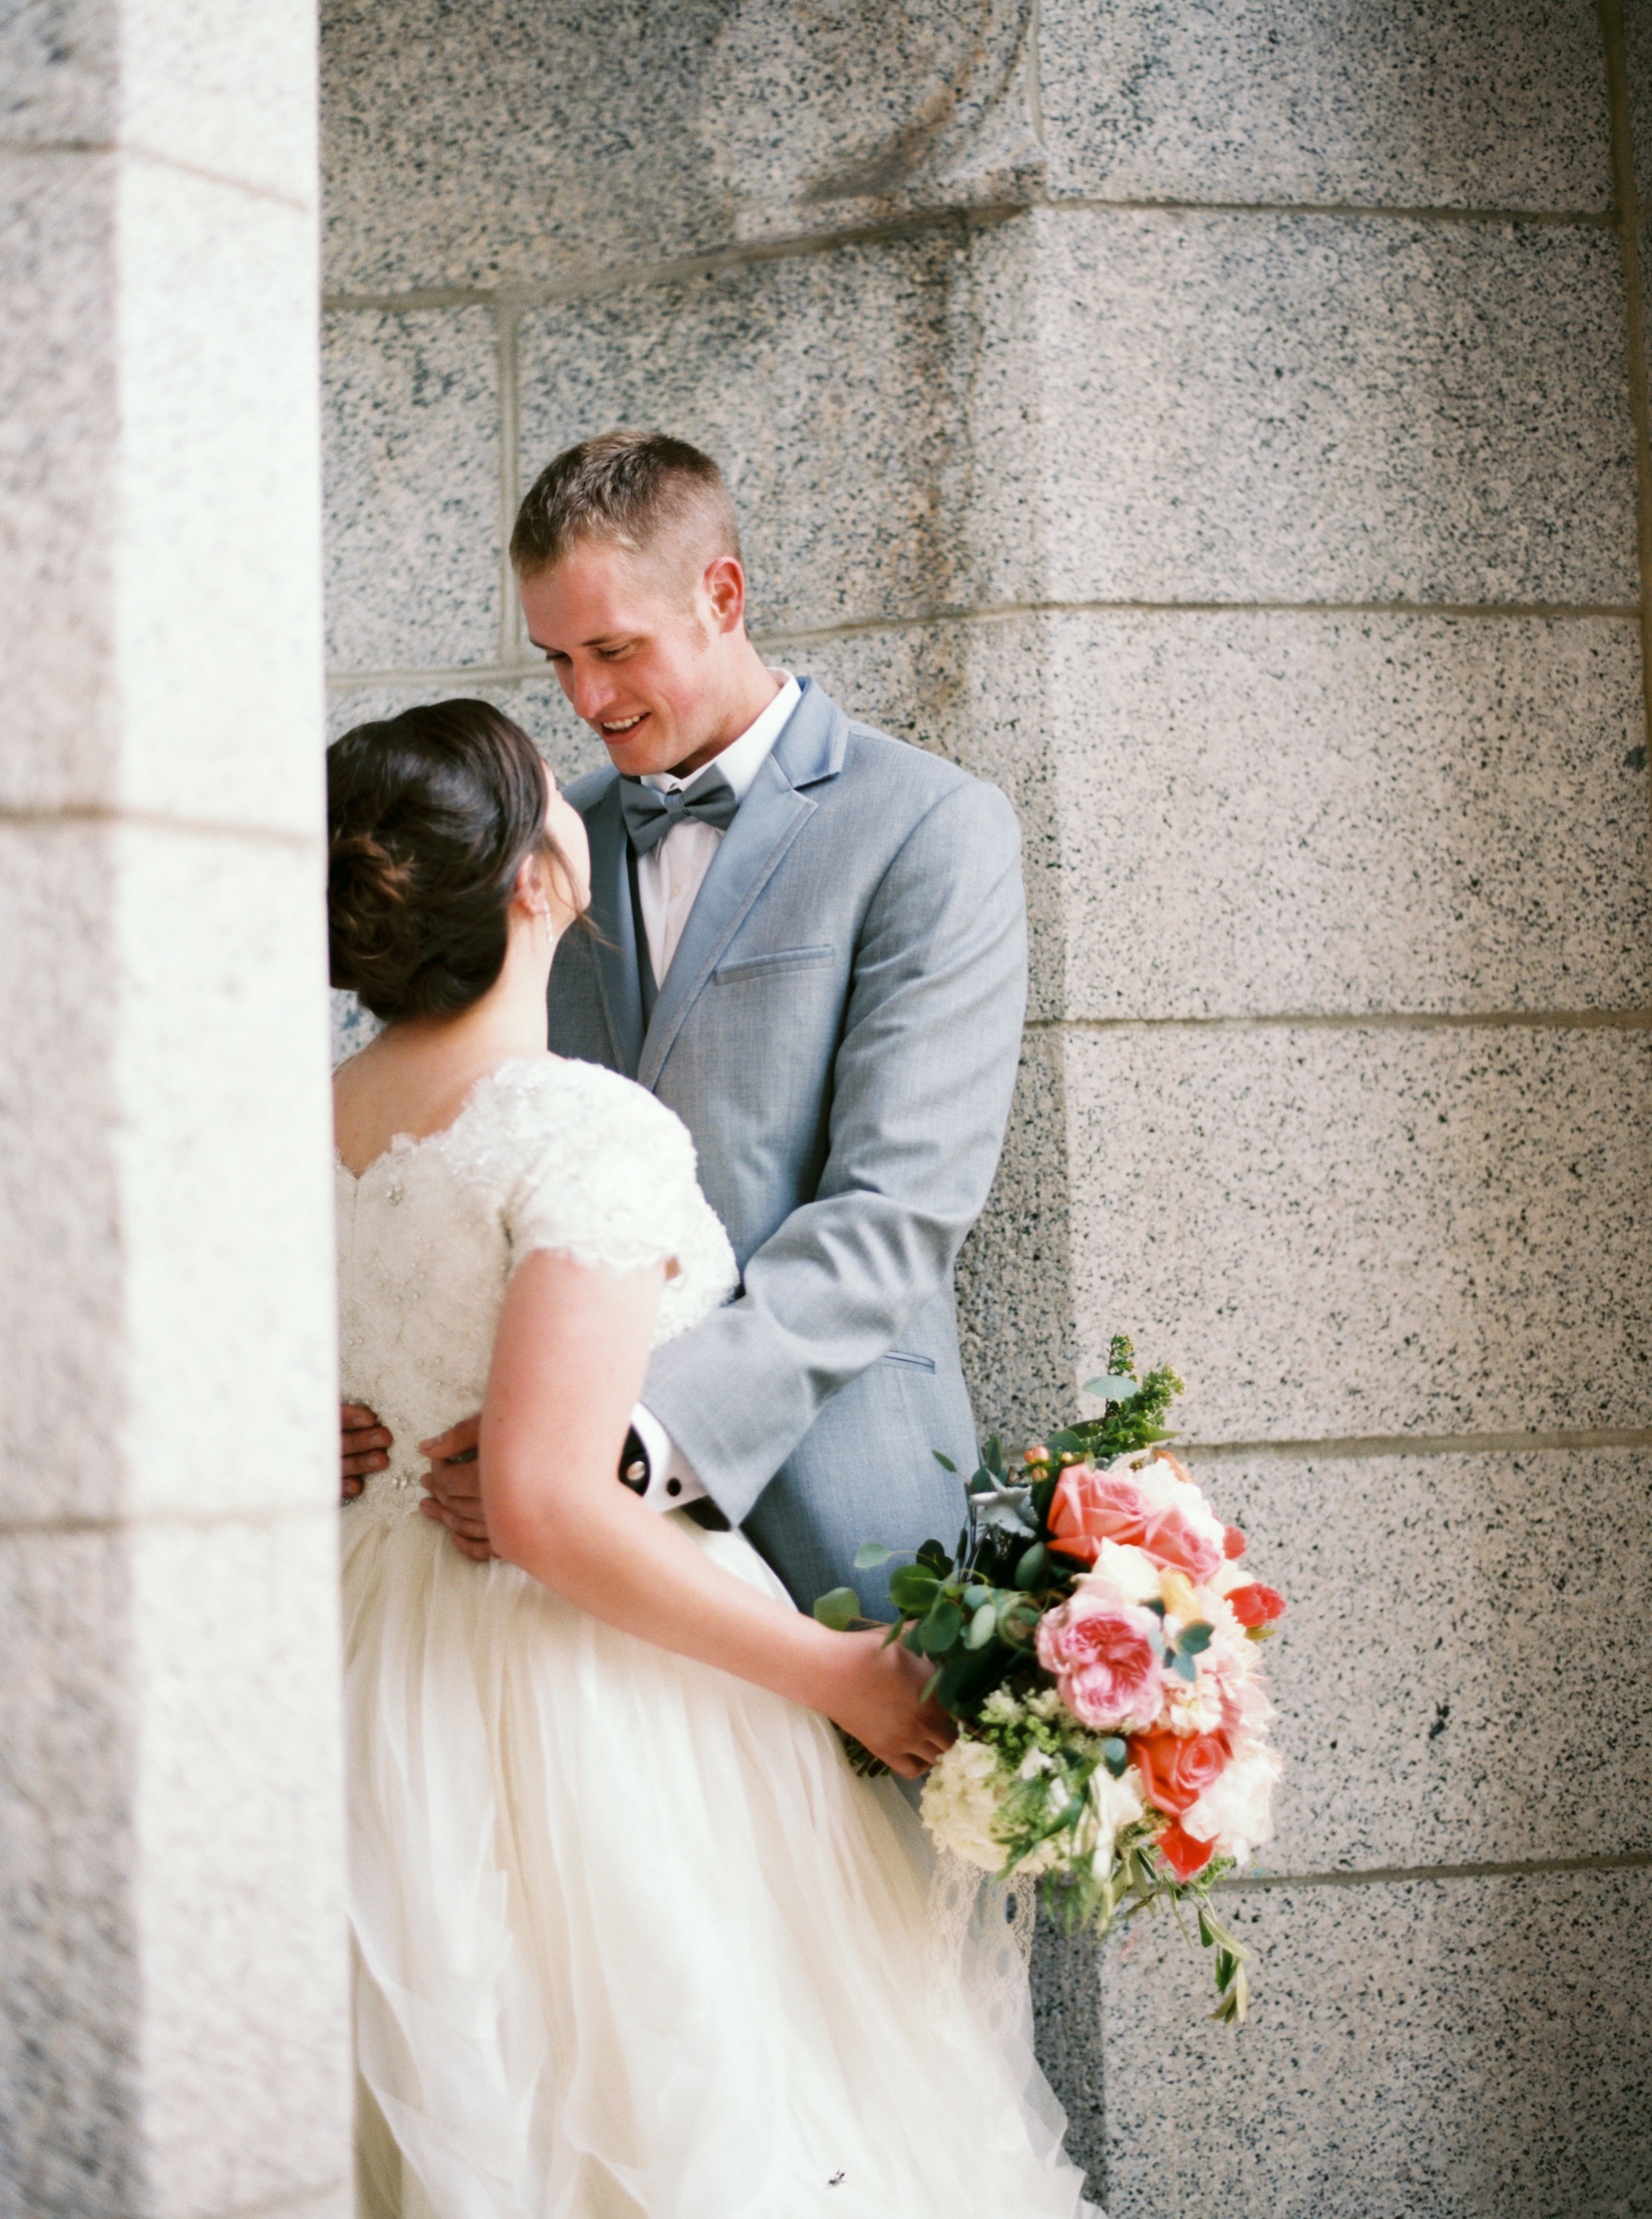 Memorial House Wedding | Utah Wedding Design and Planning | Michelle Leo Events | Jacque Lynn Photography